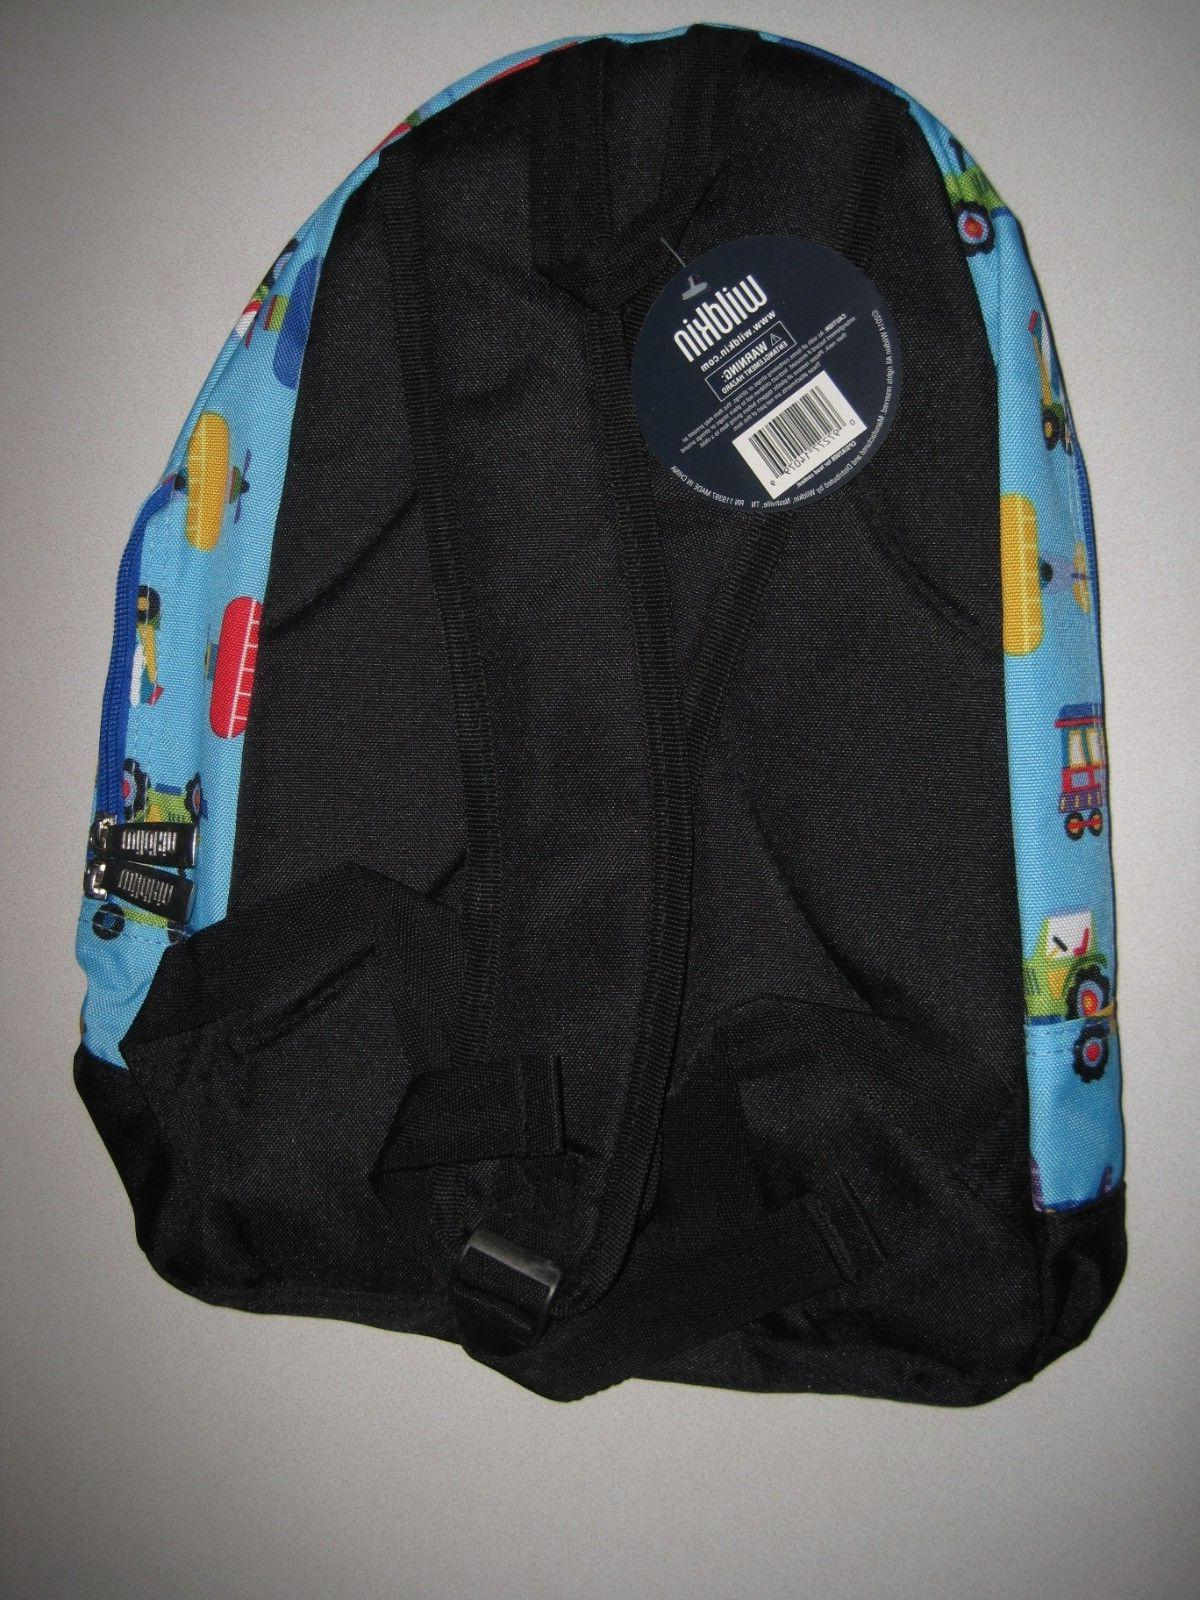 Wildkin 15 Extra with Padded